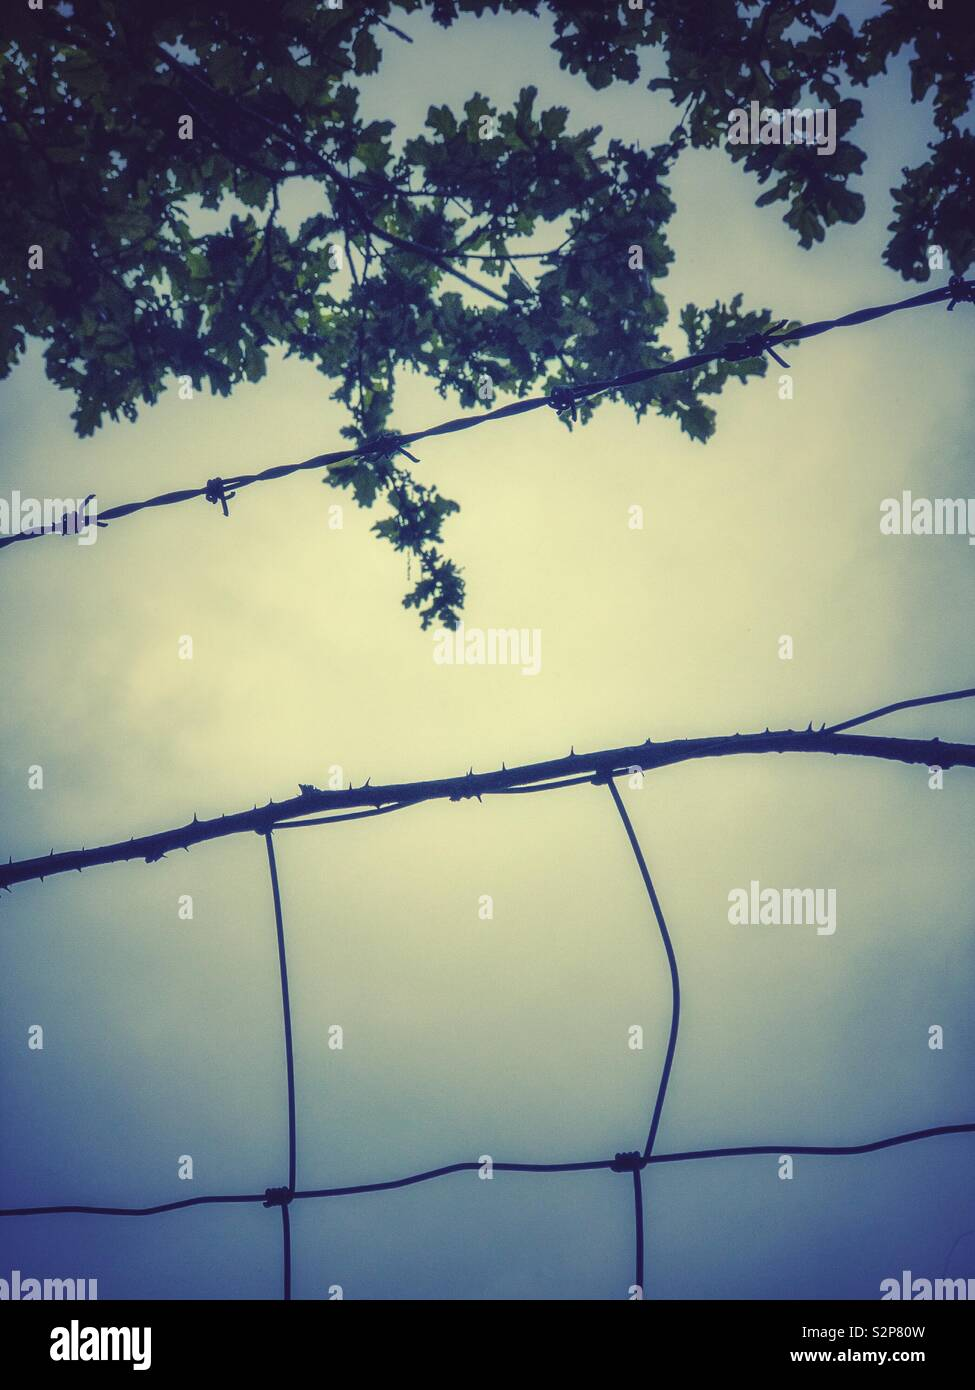 Barbed wire fence and overhanging tree. - Stock Image